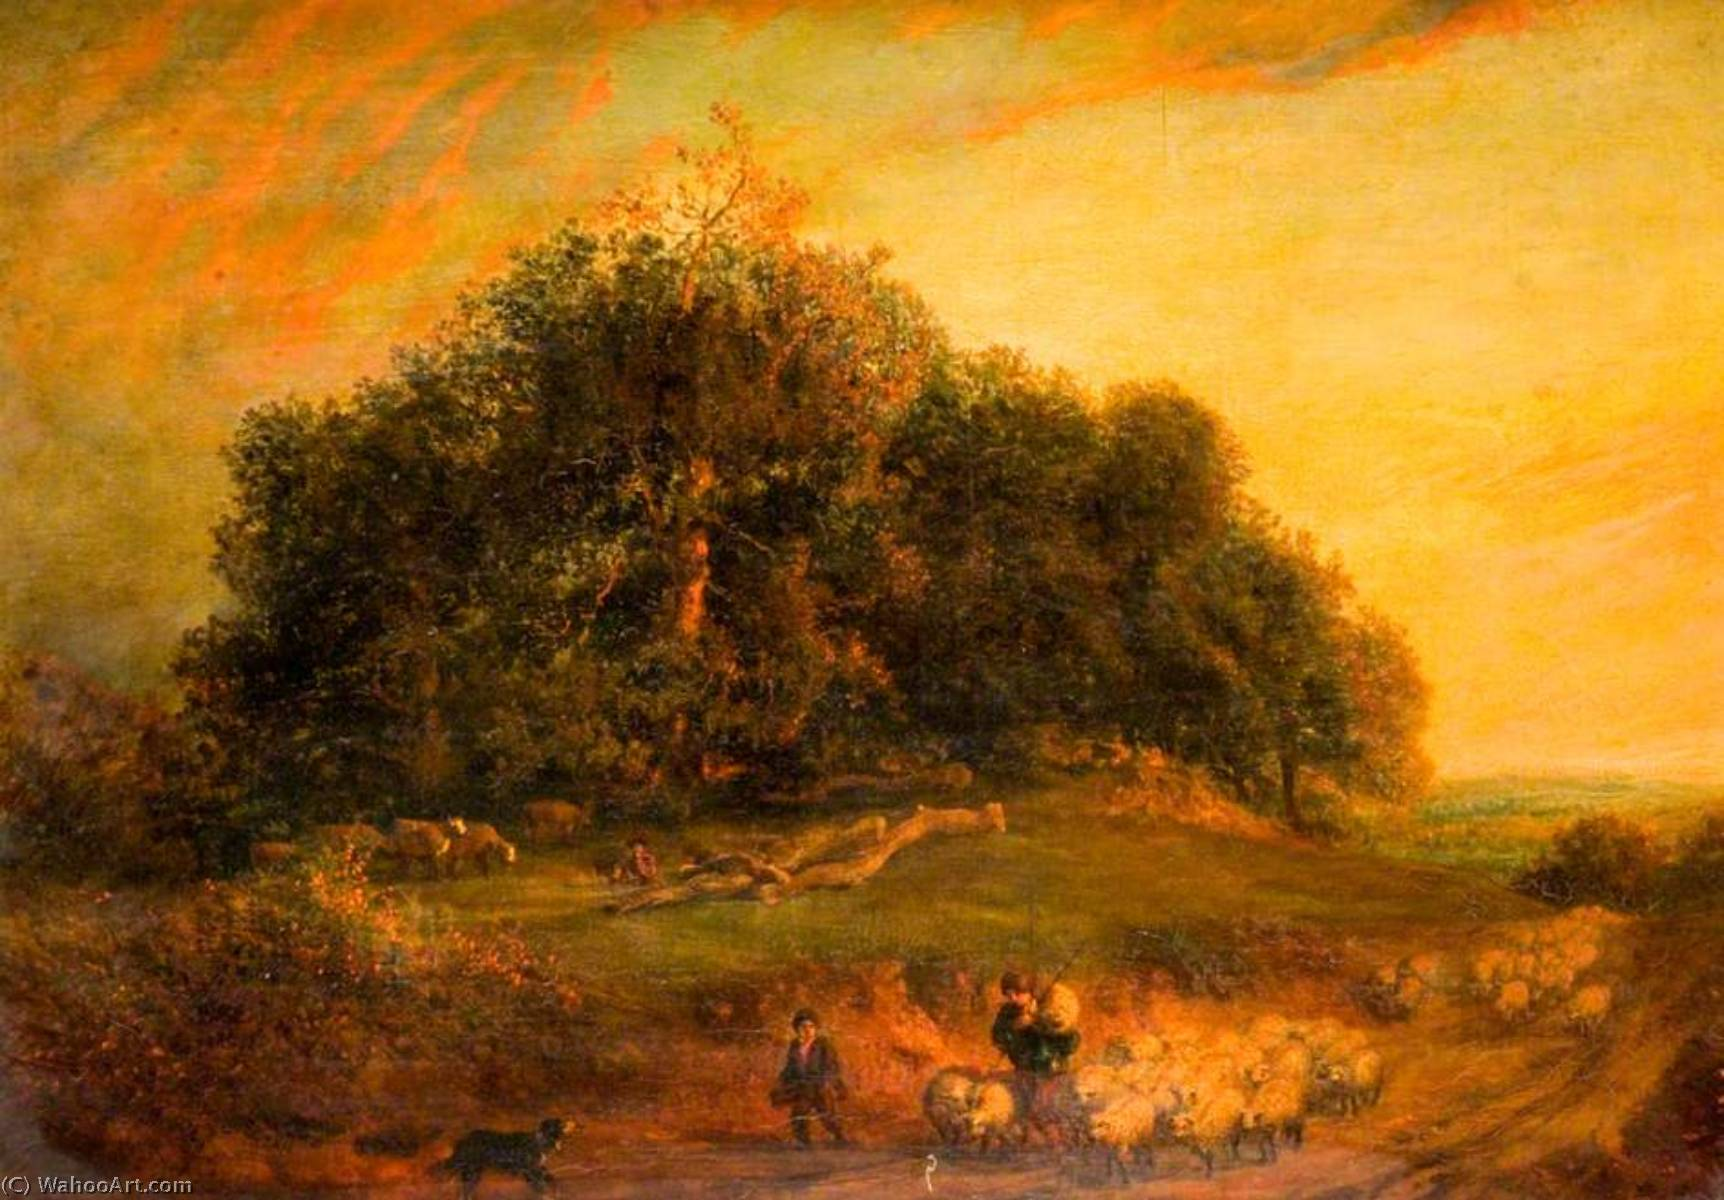 Sunset, Oil On Canvas by Henry Mark Anthony (1817-1886)